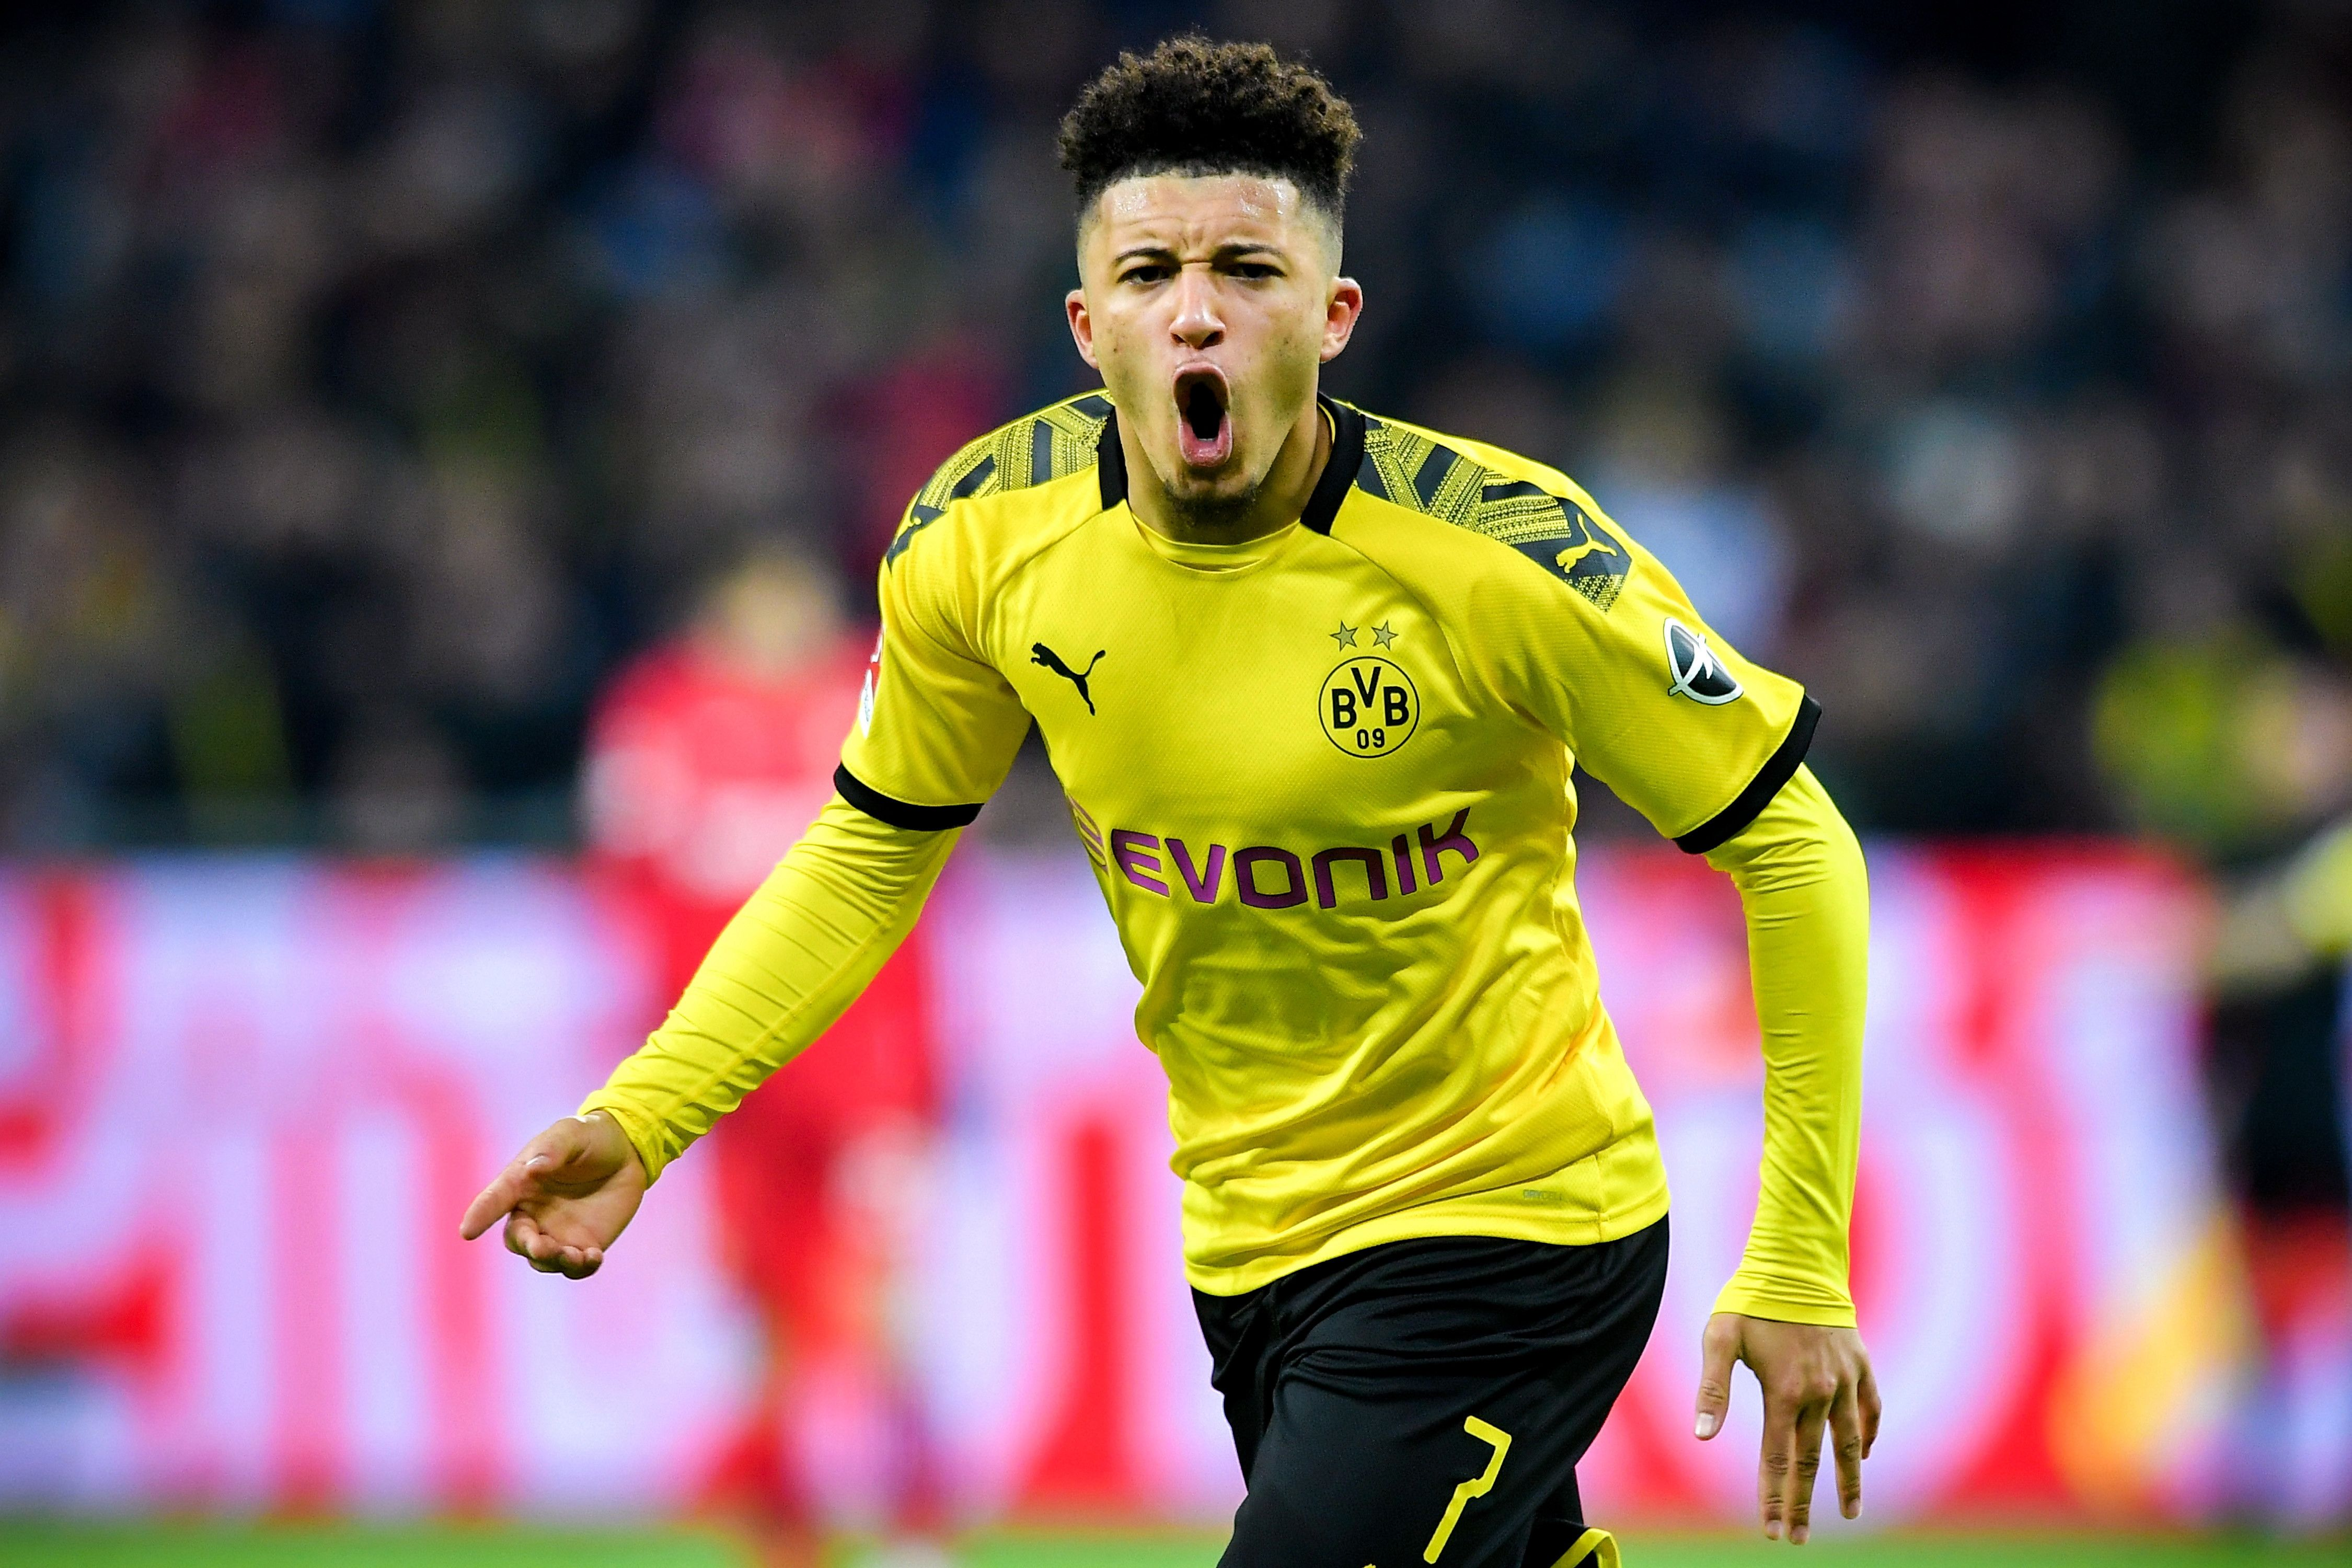 Man Utd Told To Fork Out 122m Transfer Fee For Jadon Sancho By Borussia Dortmund After Stunning Start To Season In 2020 With Images Borussia Dortmund Dortmund Hakim Ziyech